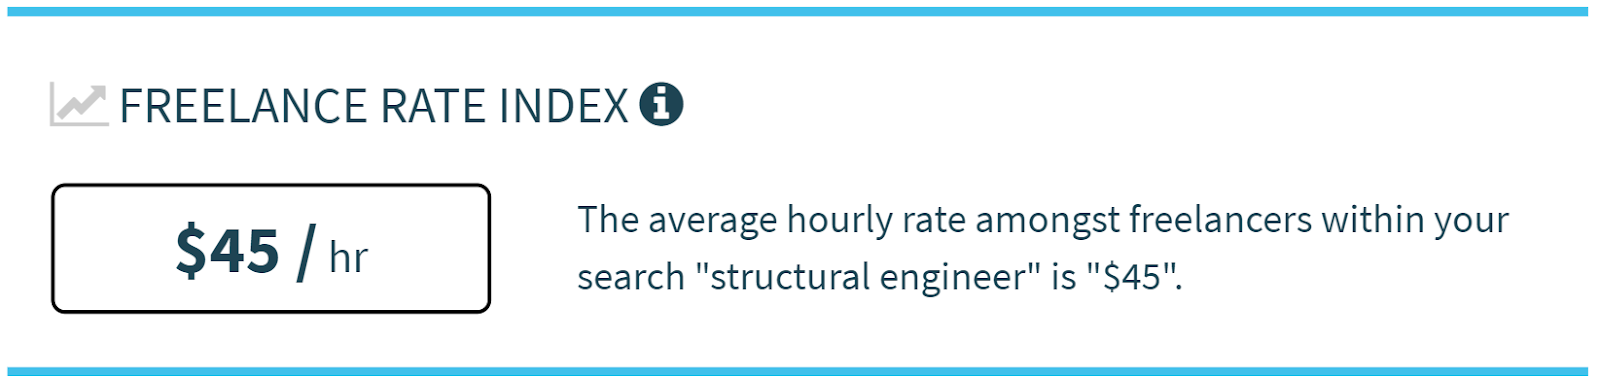 Structural Engineer - Average Freelance Rate